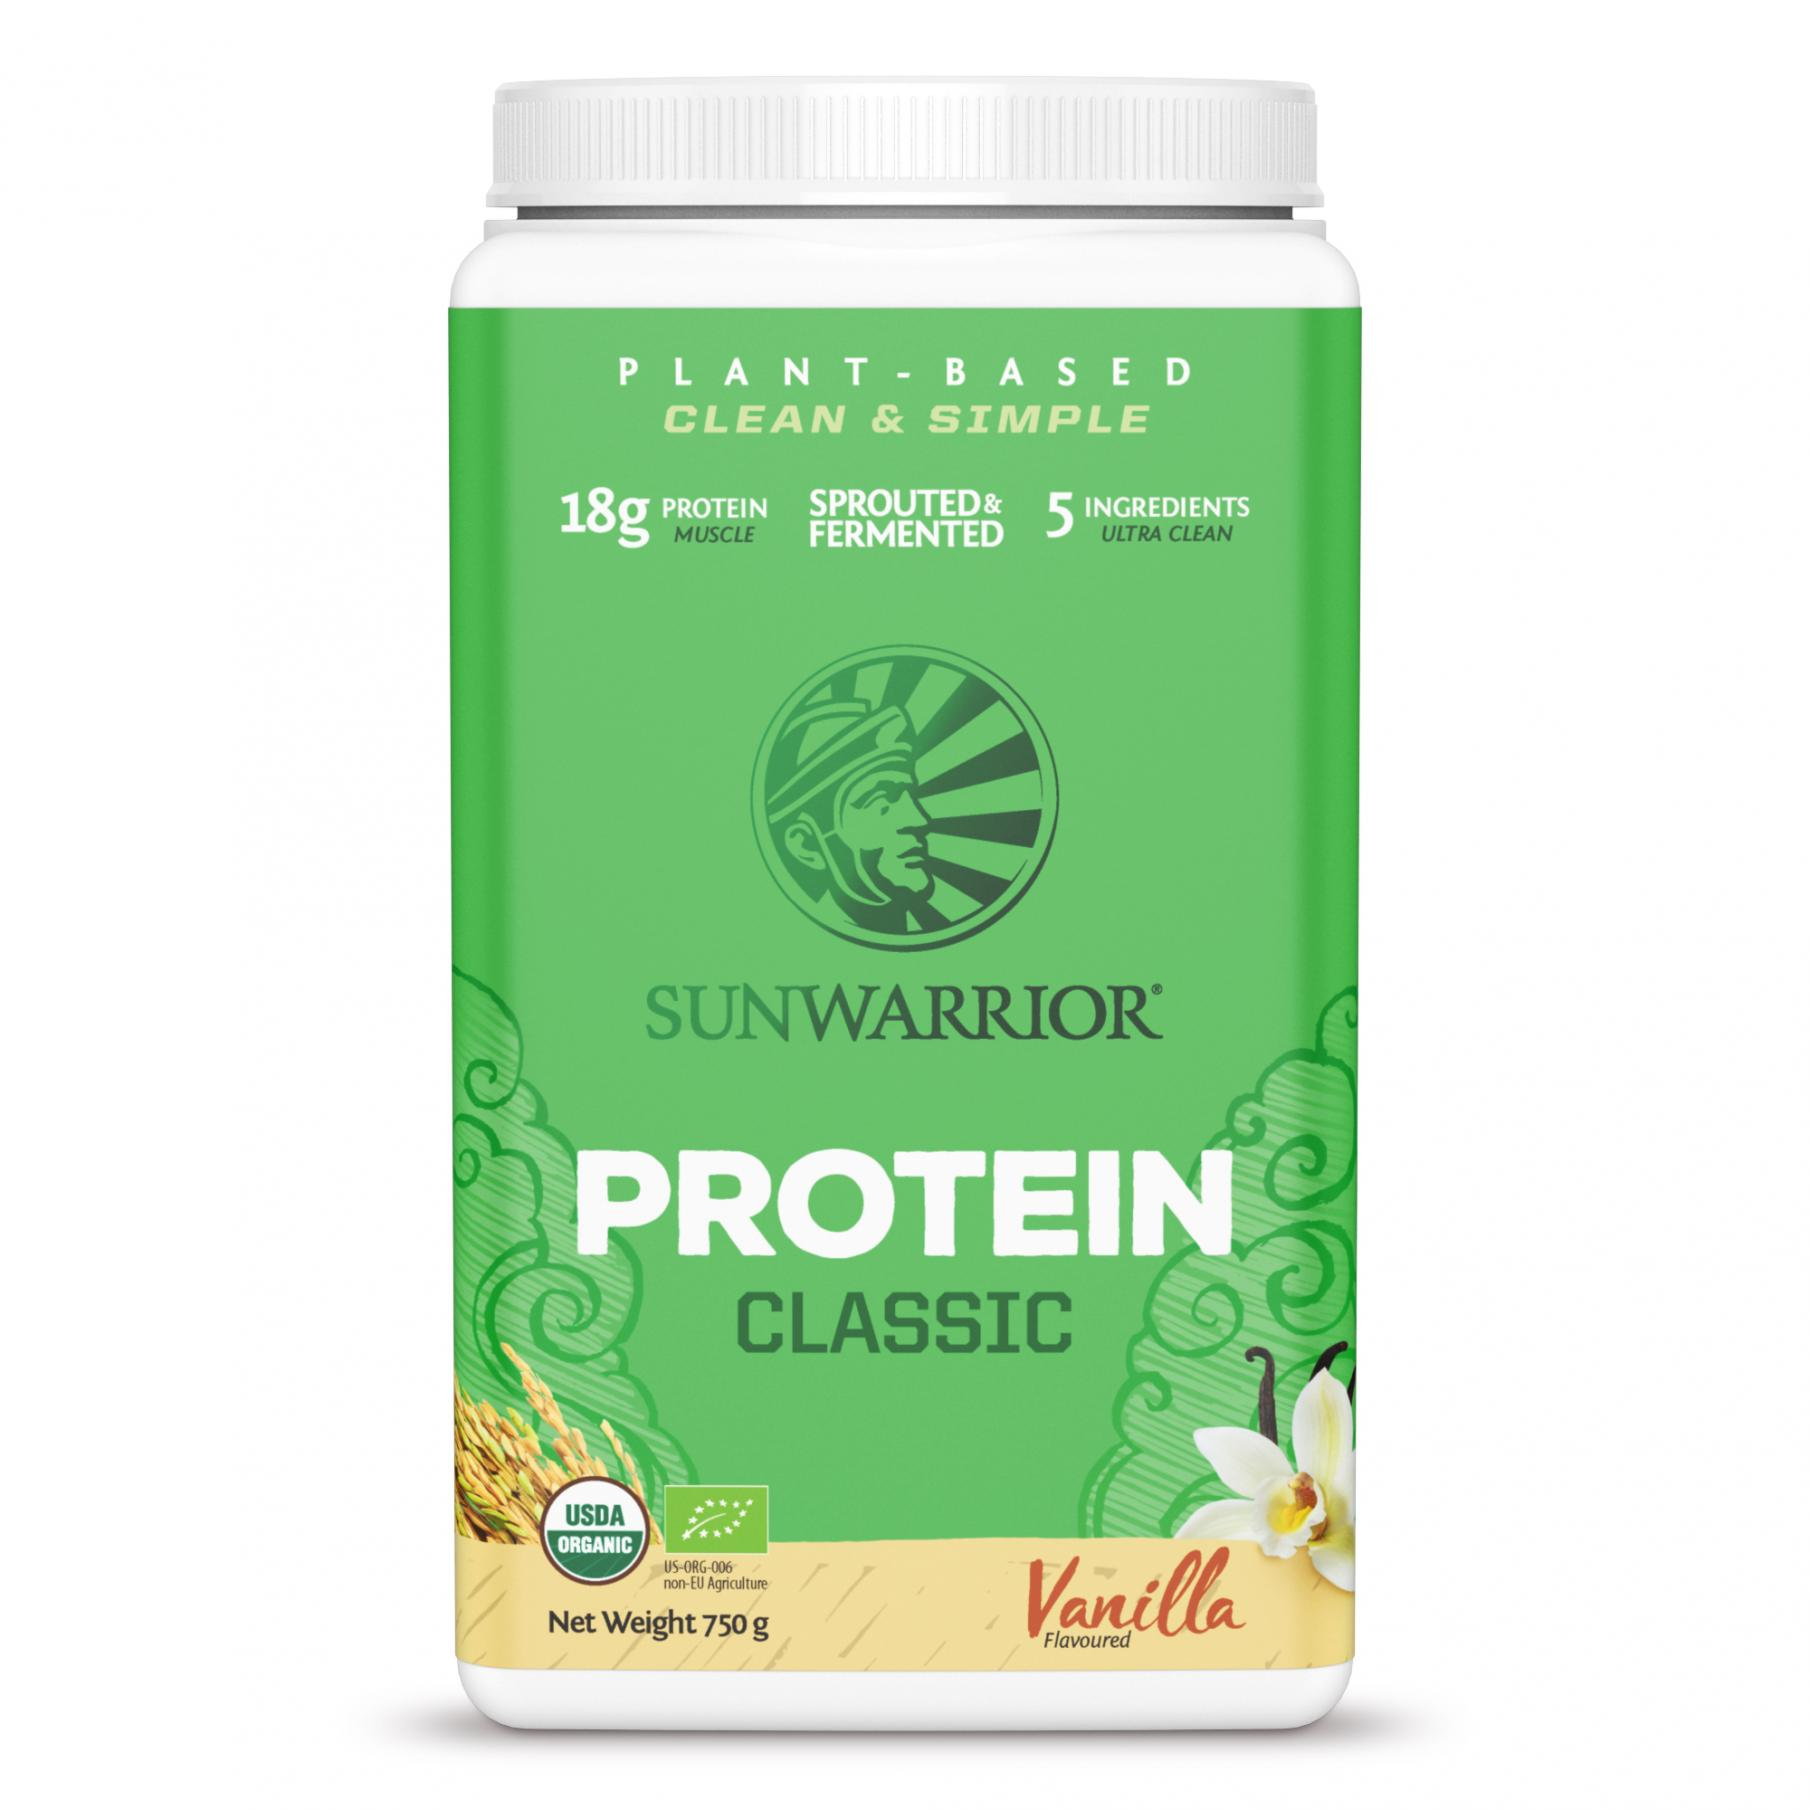 Protein Classic Vanilla 750g (Green Tub) (Currently Unavailable)